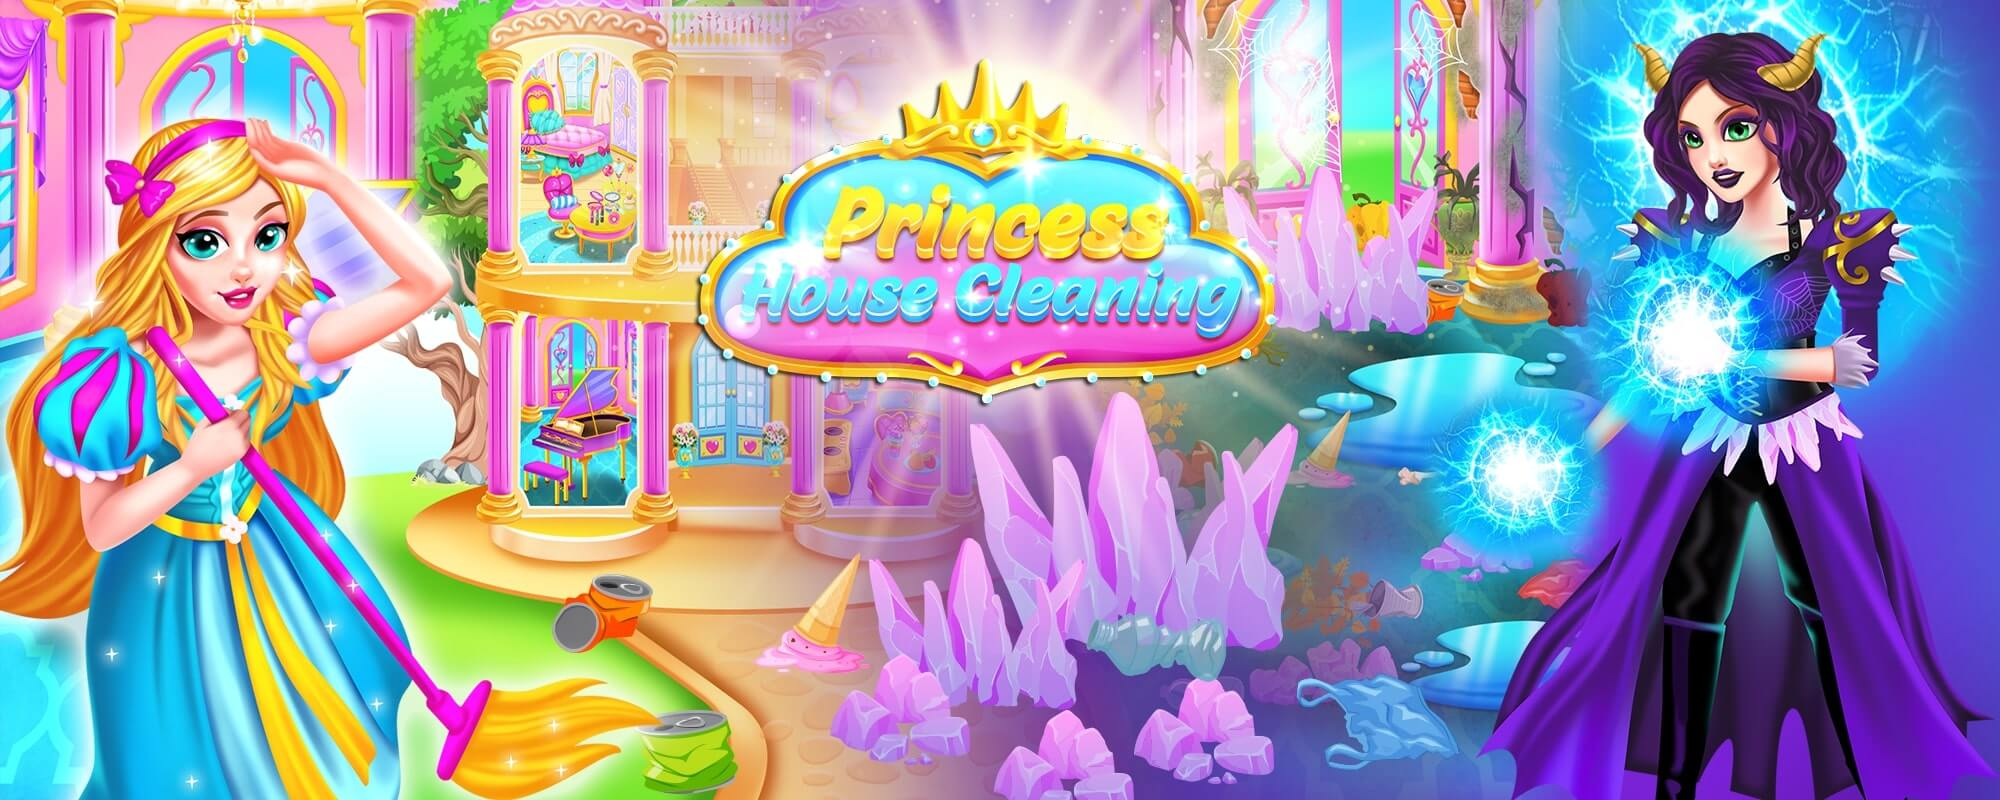 Princess House Cleaning